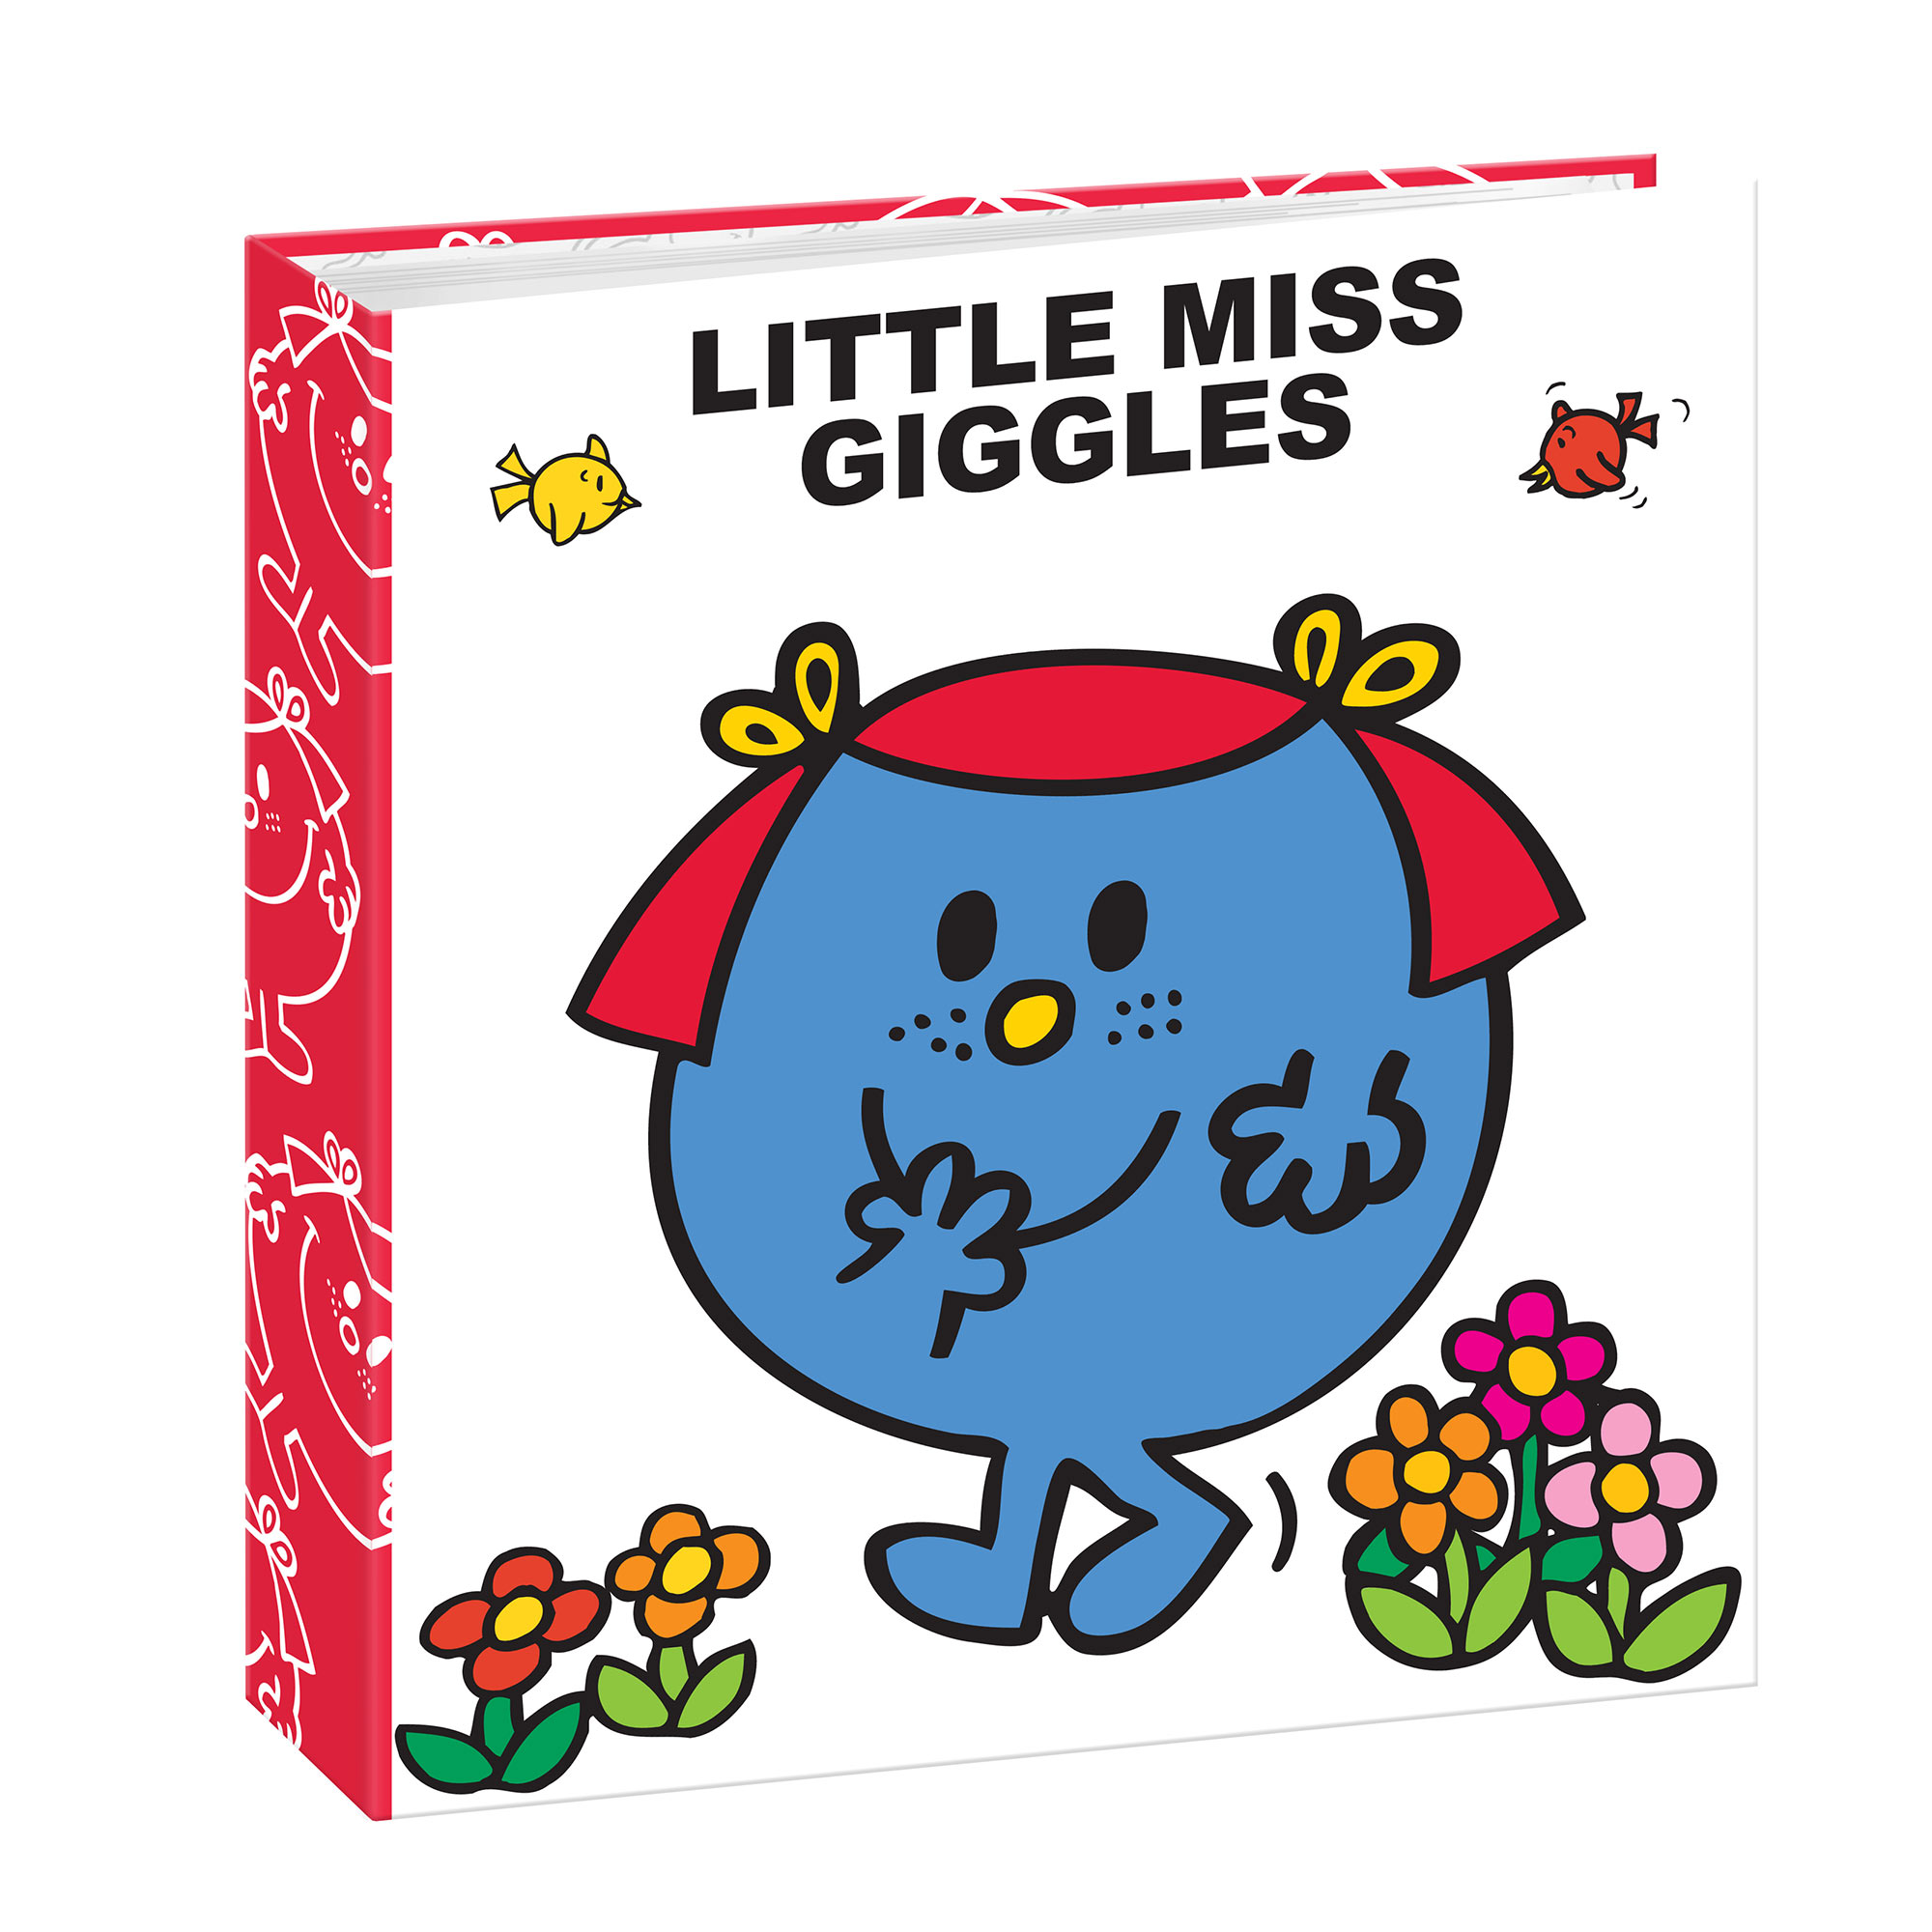 Little miss giggles clipart svg library download Mr Men and Little Miss 6x4 Slip-in Photo album - Little Miss Giggles ... svg library download